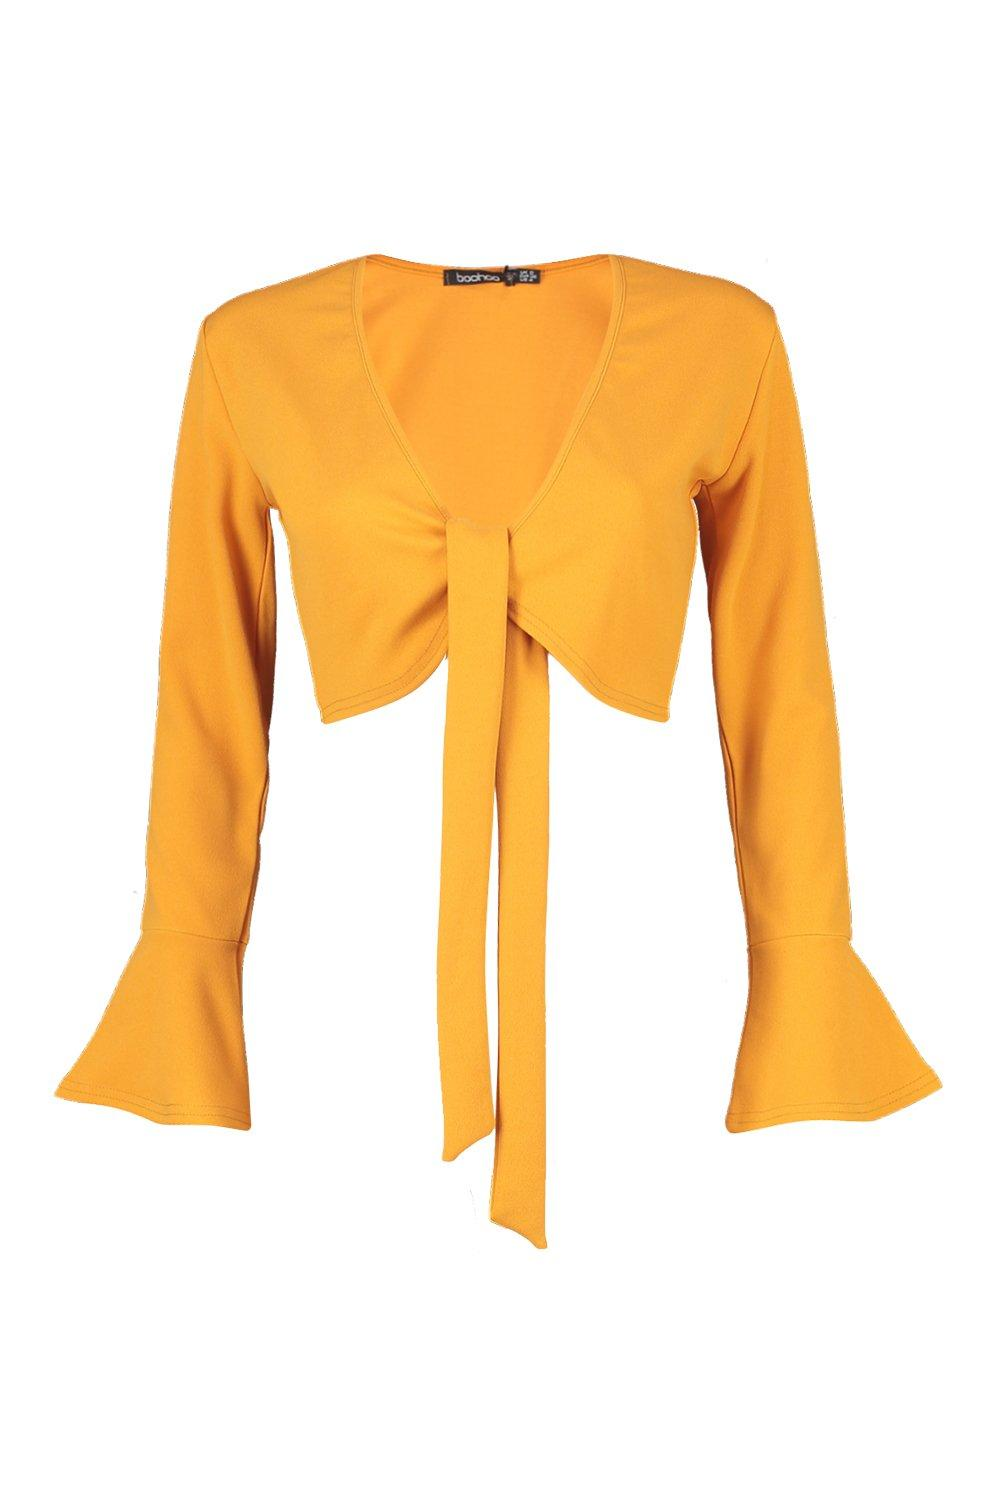 Sleeve Frill Petite Top mustard Tie Front YnYxZ16